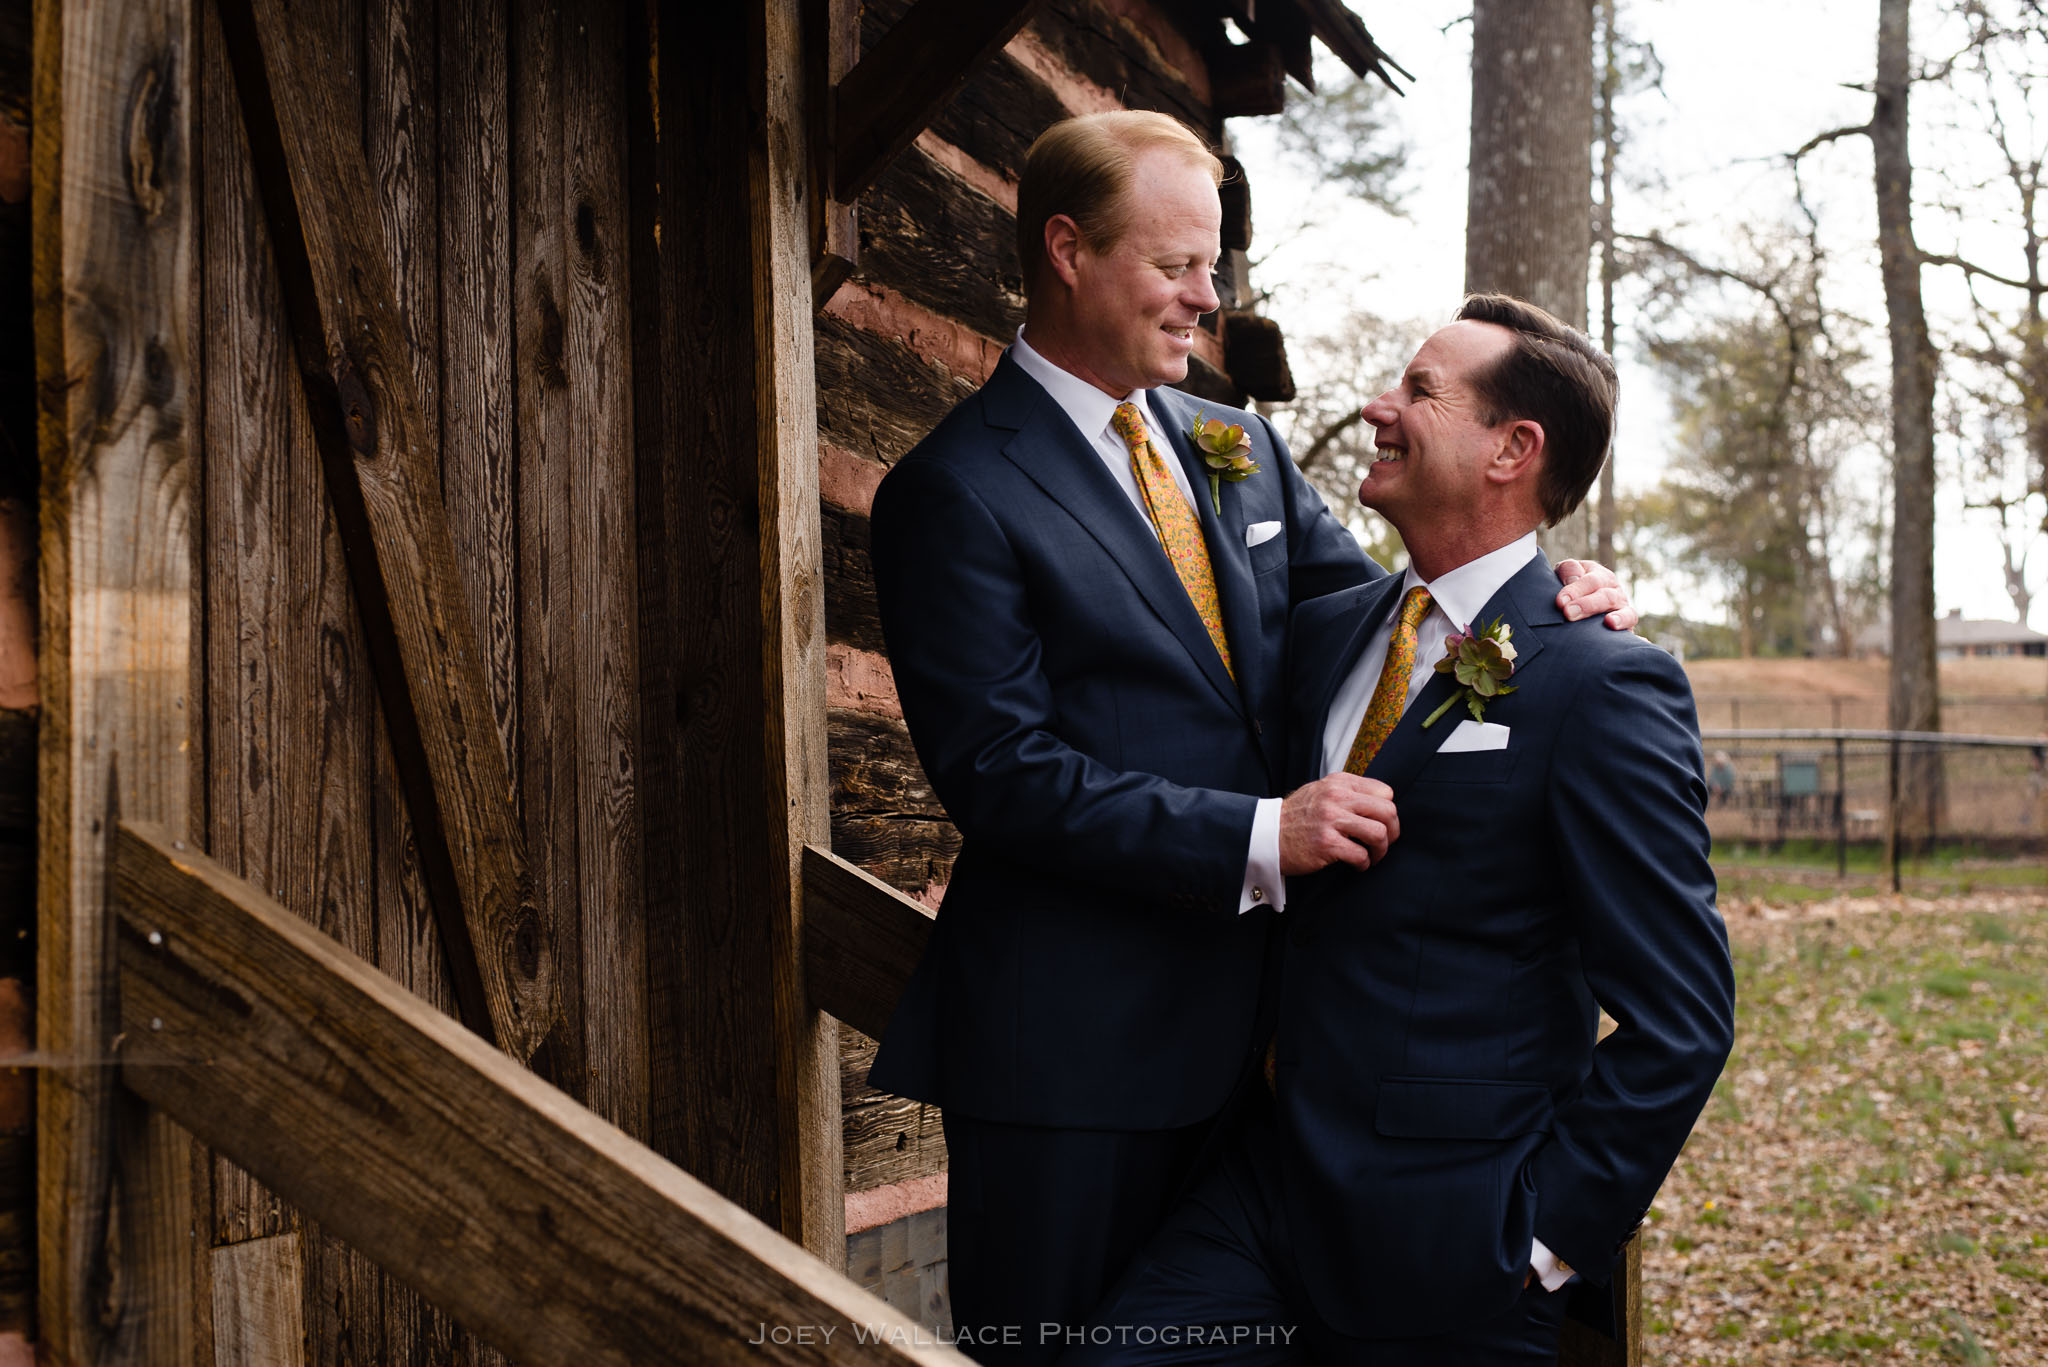 Same-Sex Gay Wedding at the Mary Gay house